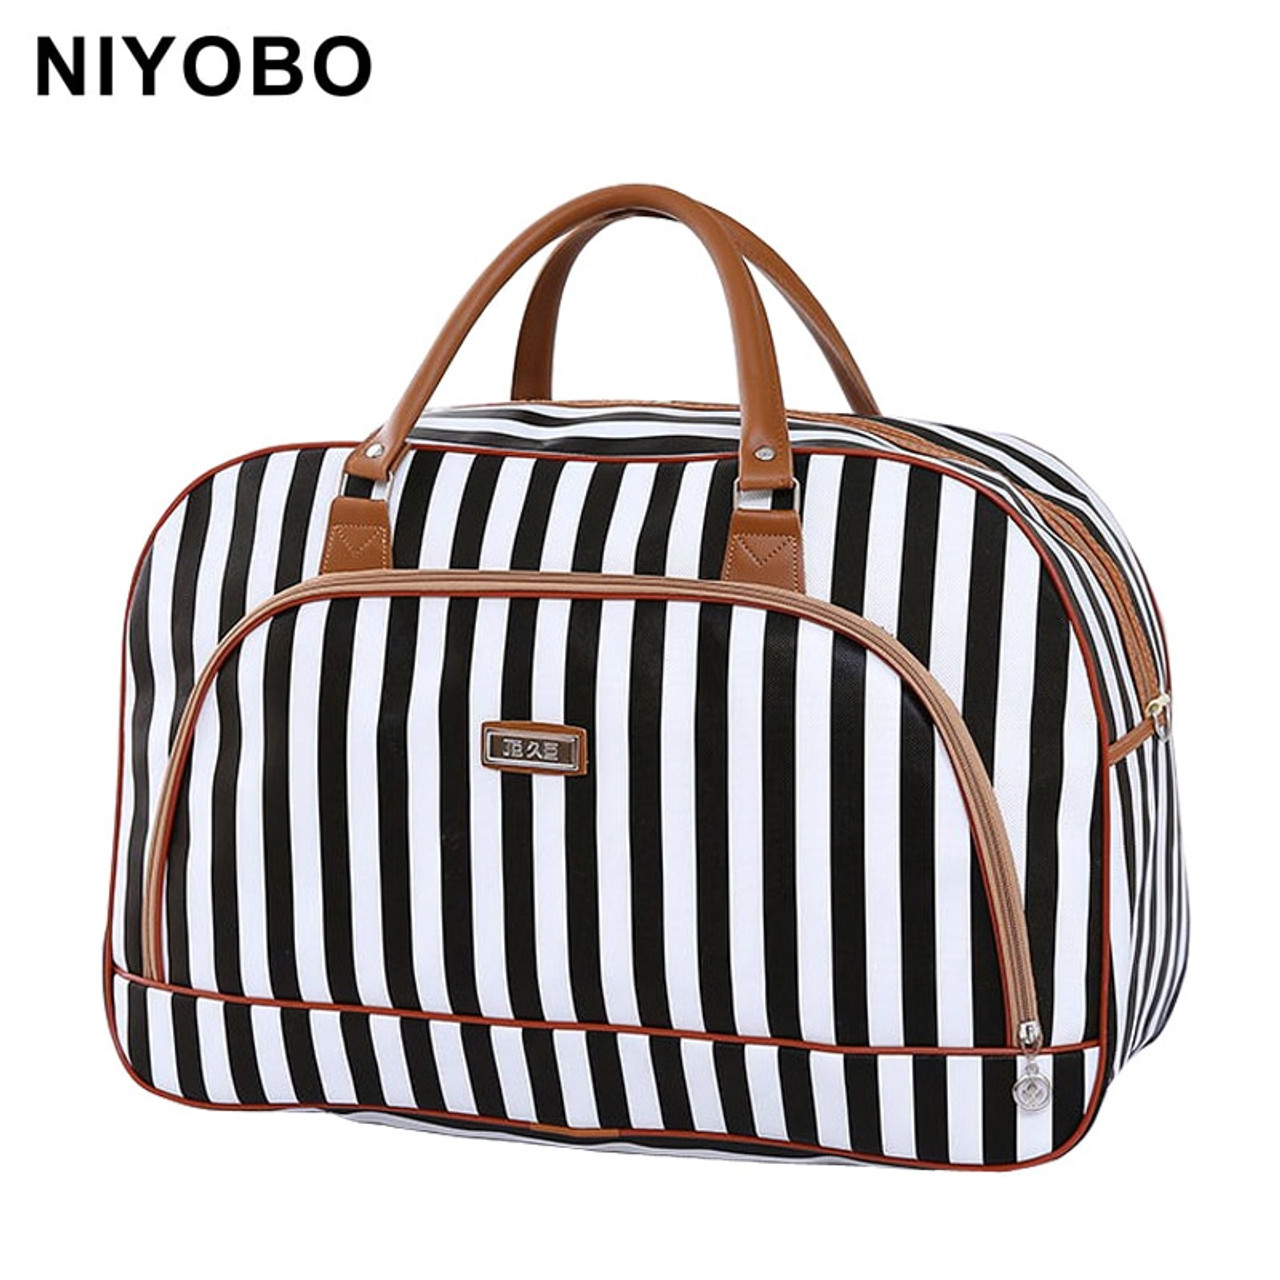 2018 Travel Bags Women Travel Bags 2018 Fashion Pu Leather Large Capacity Waterproof Print Luggage Duffle Bag Casual Travel Bags Pt1083